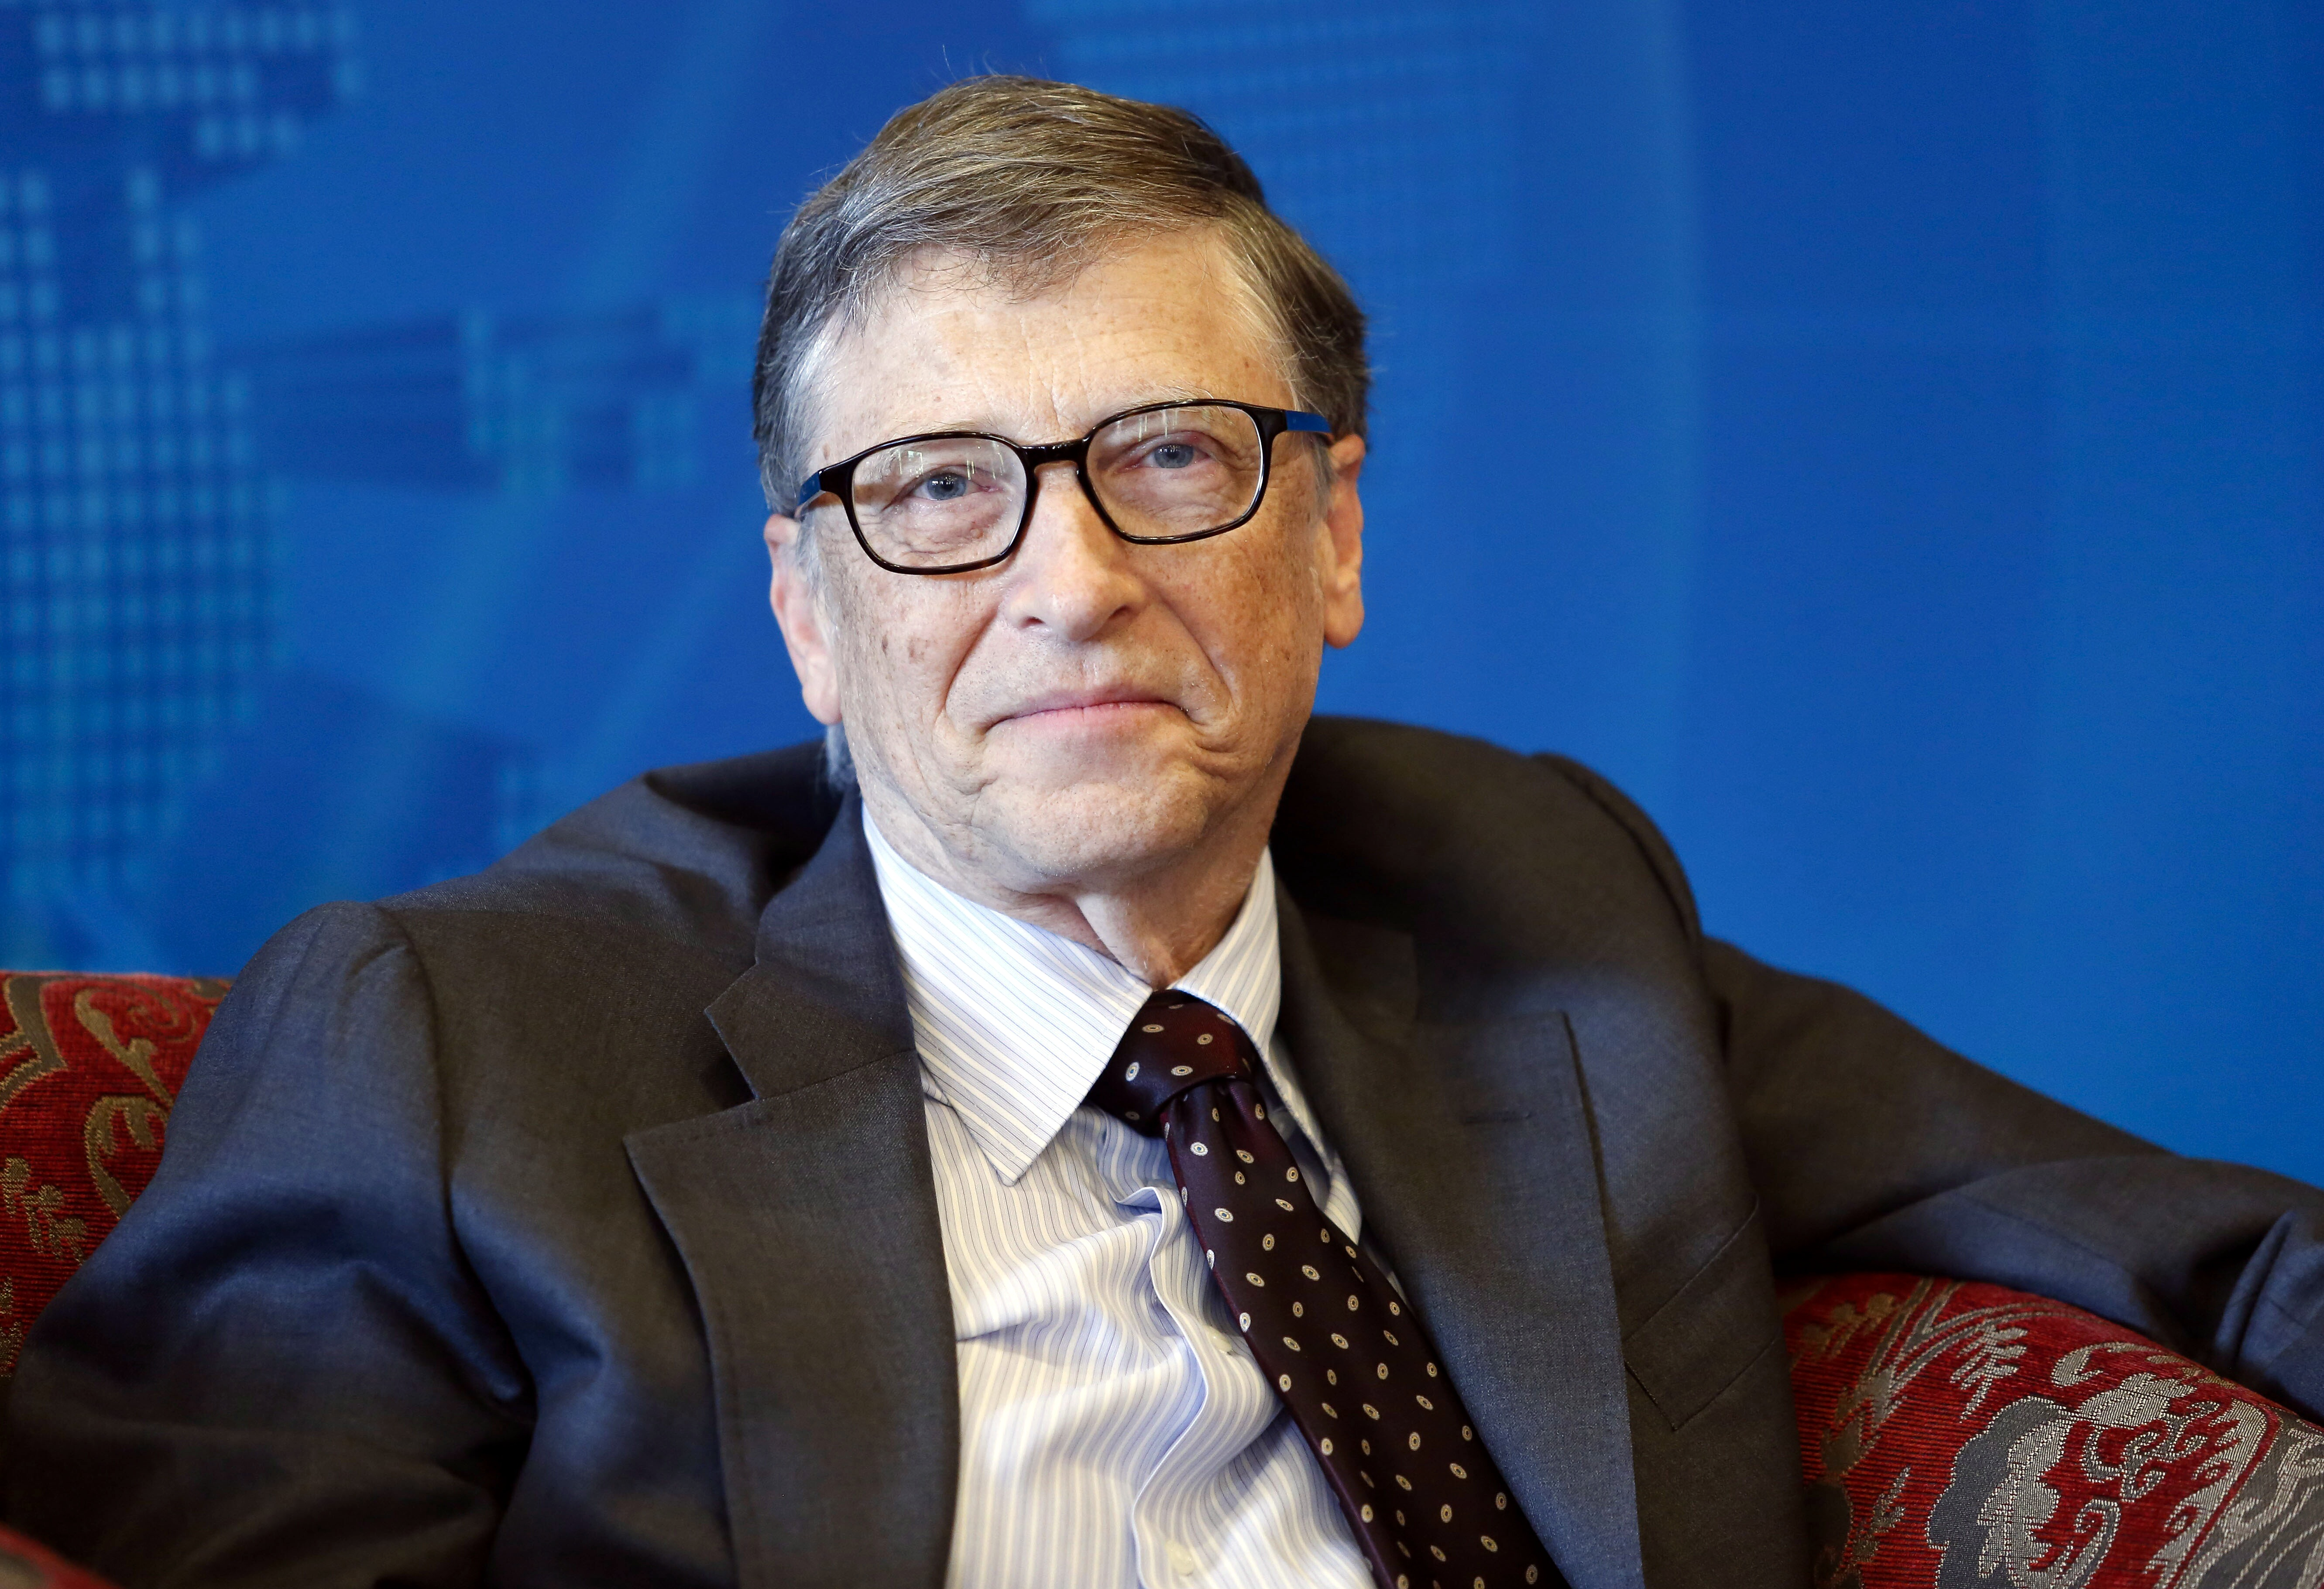 Bill Gates, co-founder of Microsoft attends a breakfast meeting with the theme  Dialogue: Technology & Innovation for a Sustainable Future  during the Boao Forum For Asia Annual Conference 2015 in Qionghai city, Hainan Province, China on March 29, 2015.